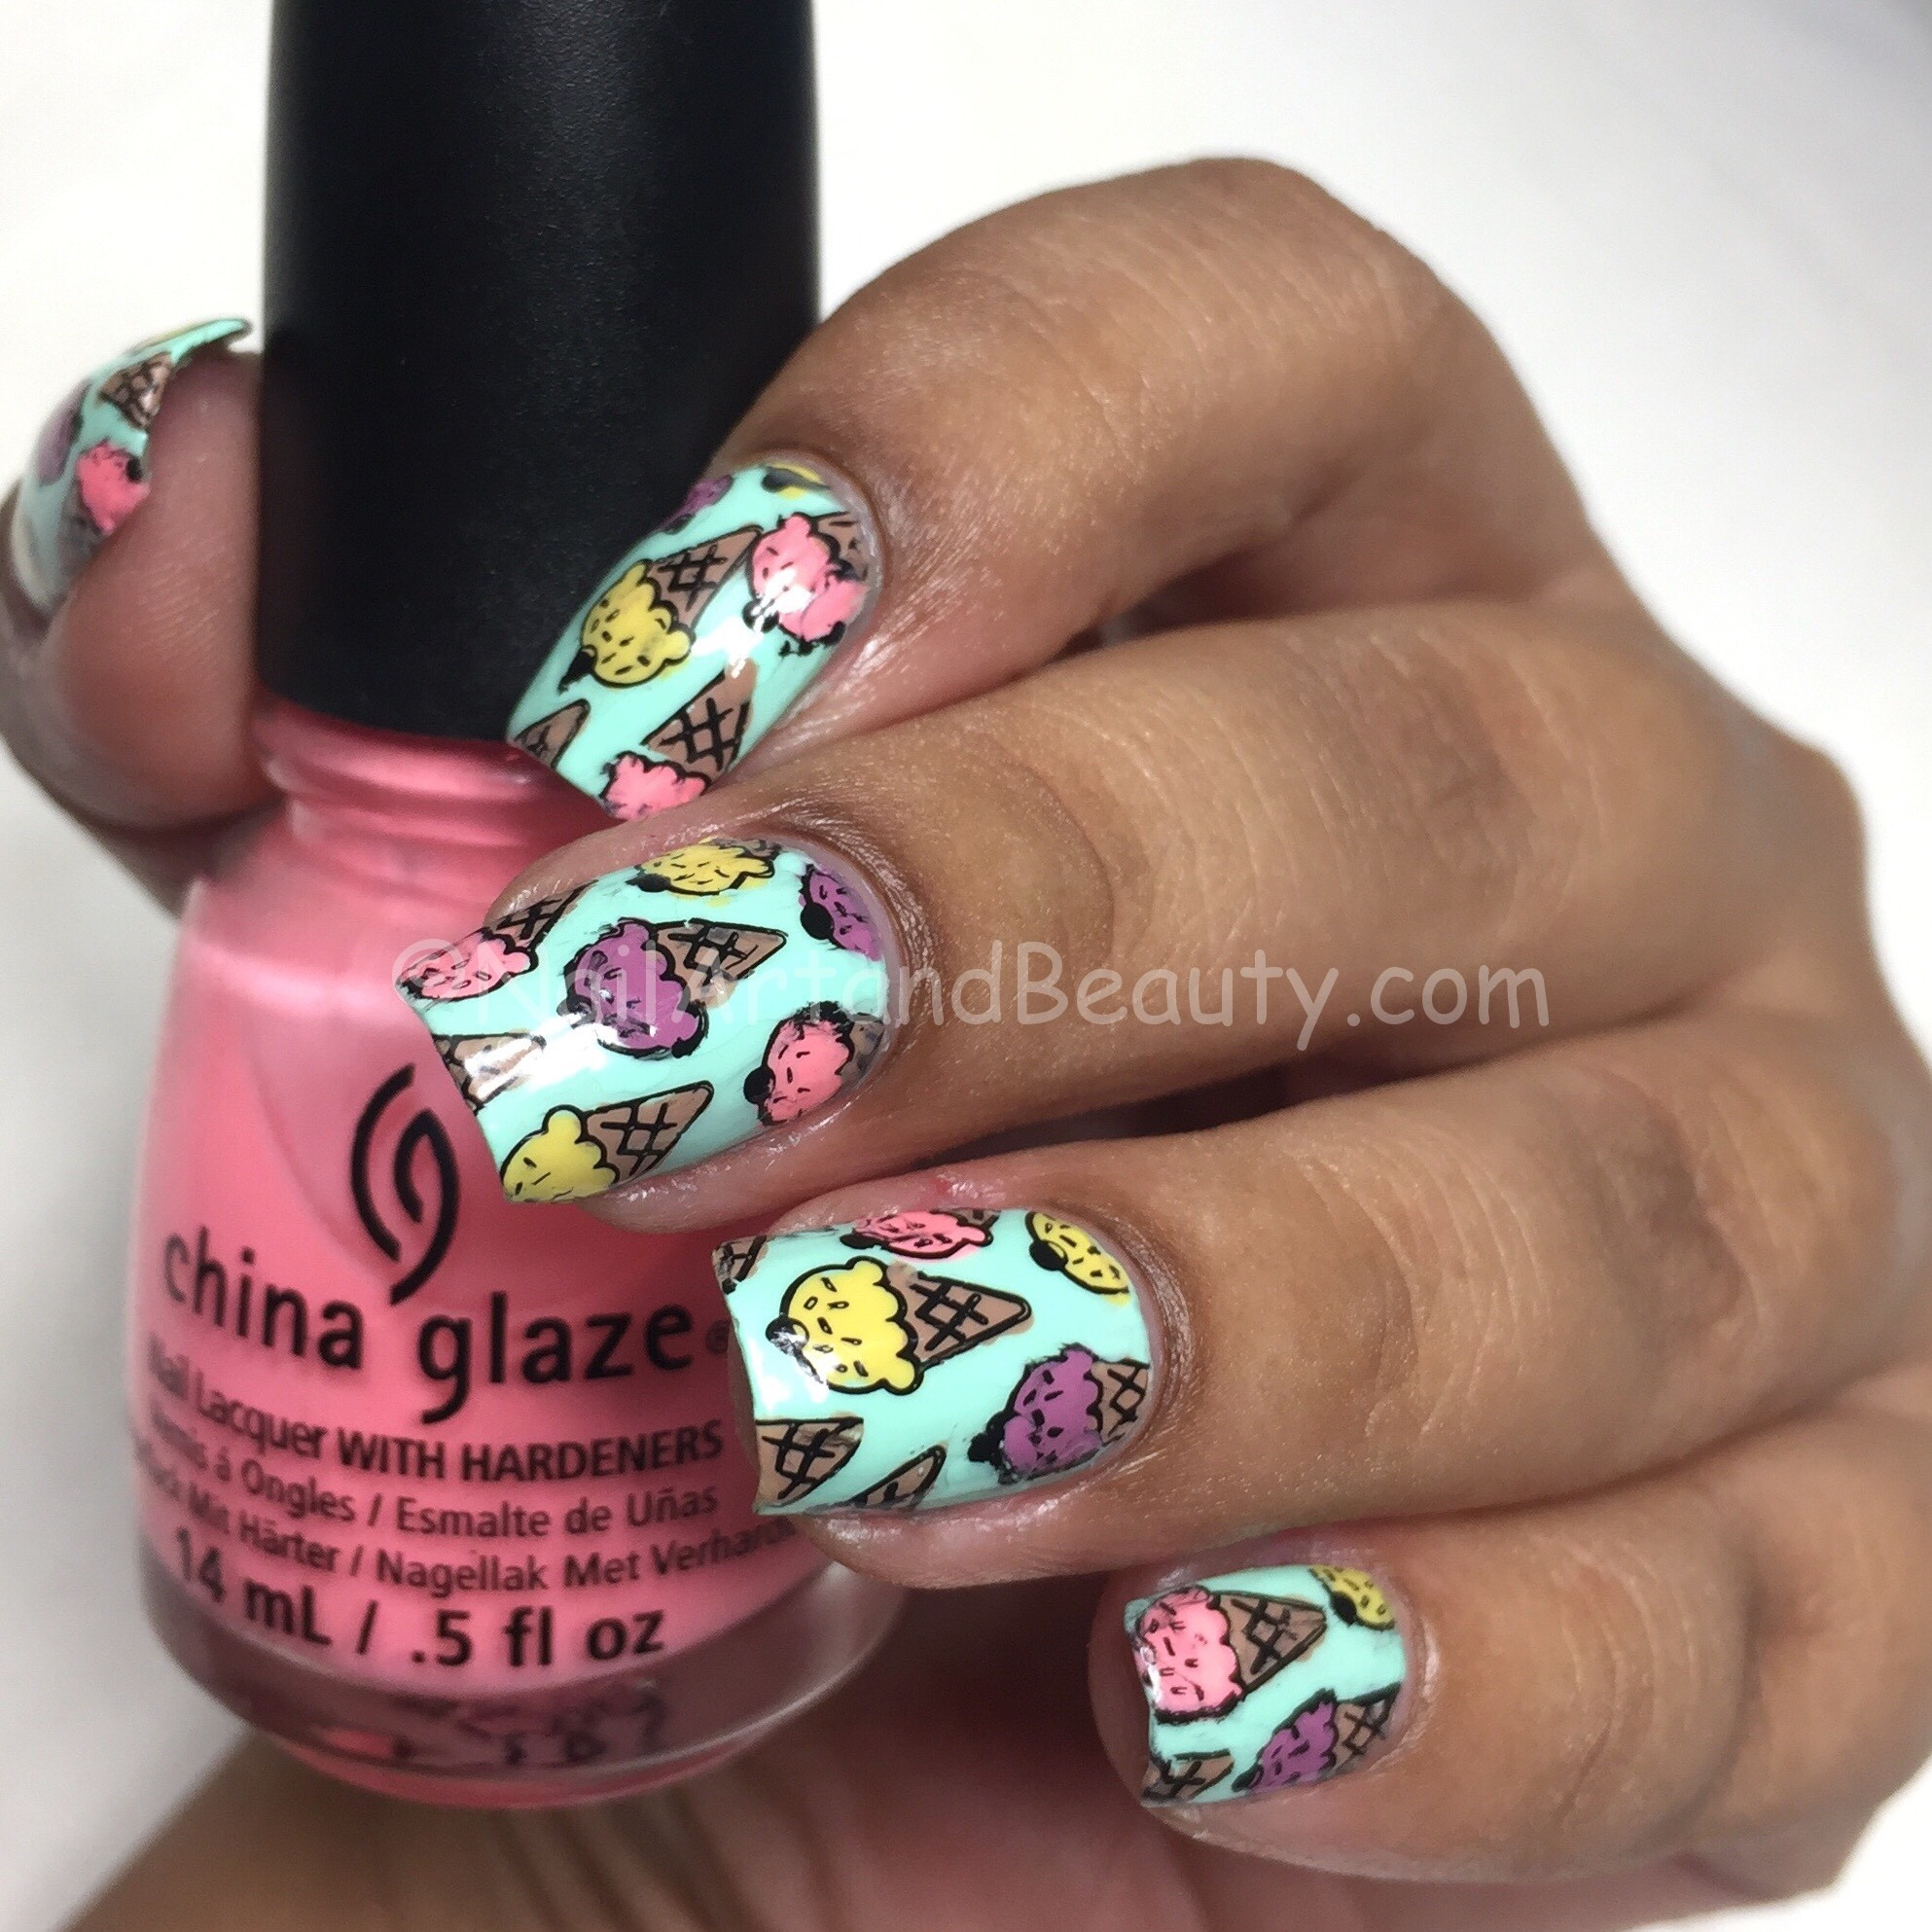 Yummy Ice cream Nails